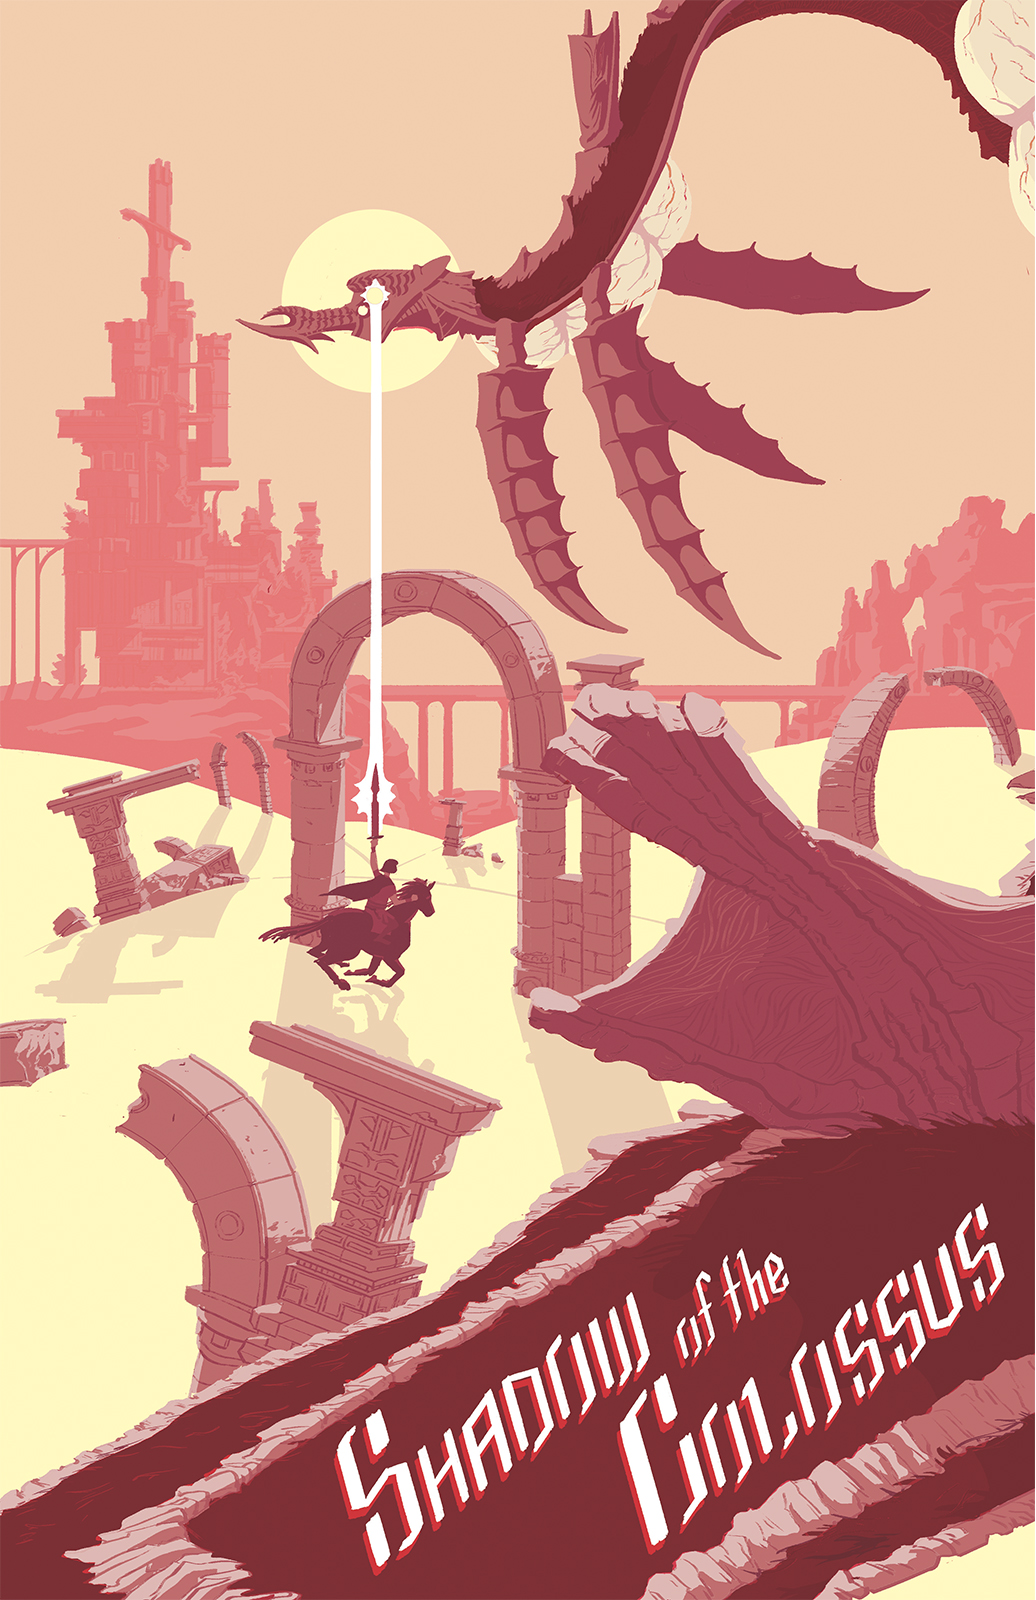 Shadow of the Colossus fanart. Phalanx, a flying serpentine colossus floats over a desert landscape littered with arches. Wander and Agro chase the colossus with a raised sword. In the background the Main Temple can be seen. The foreground has the game's title.